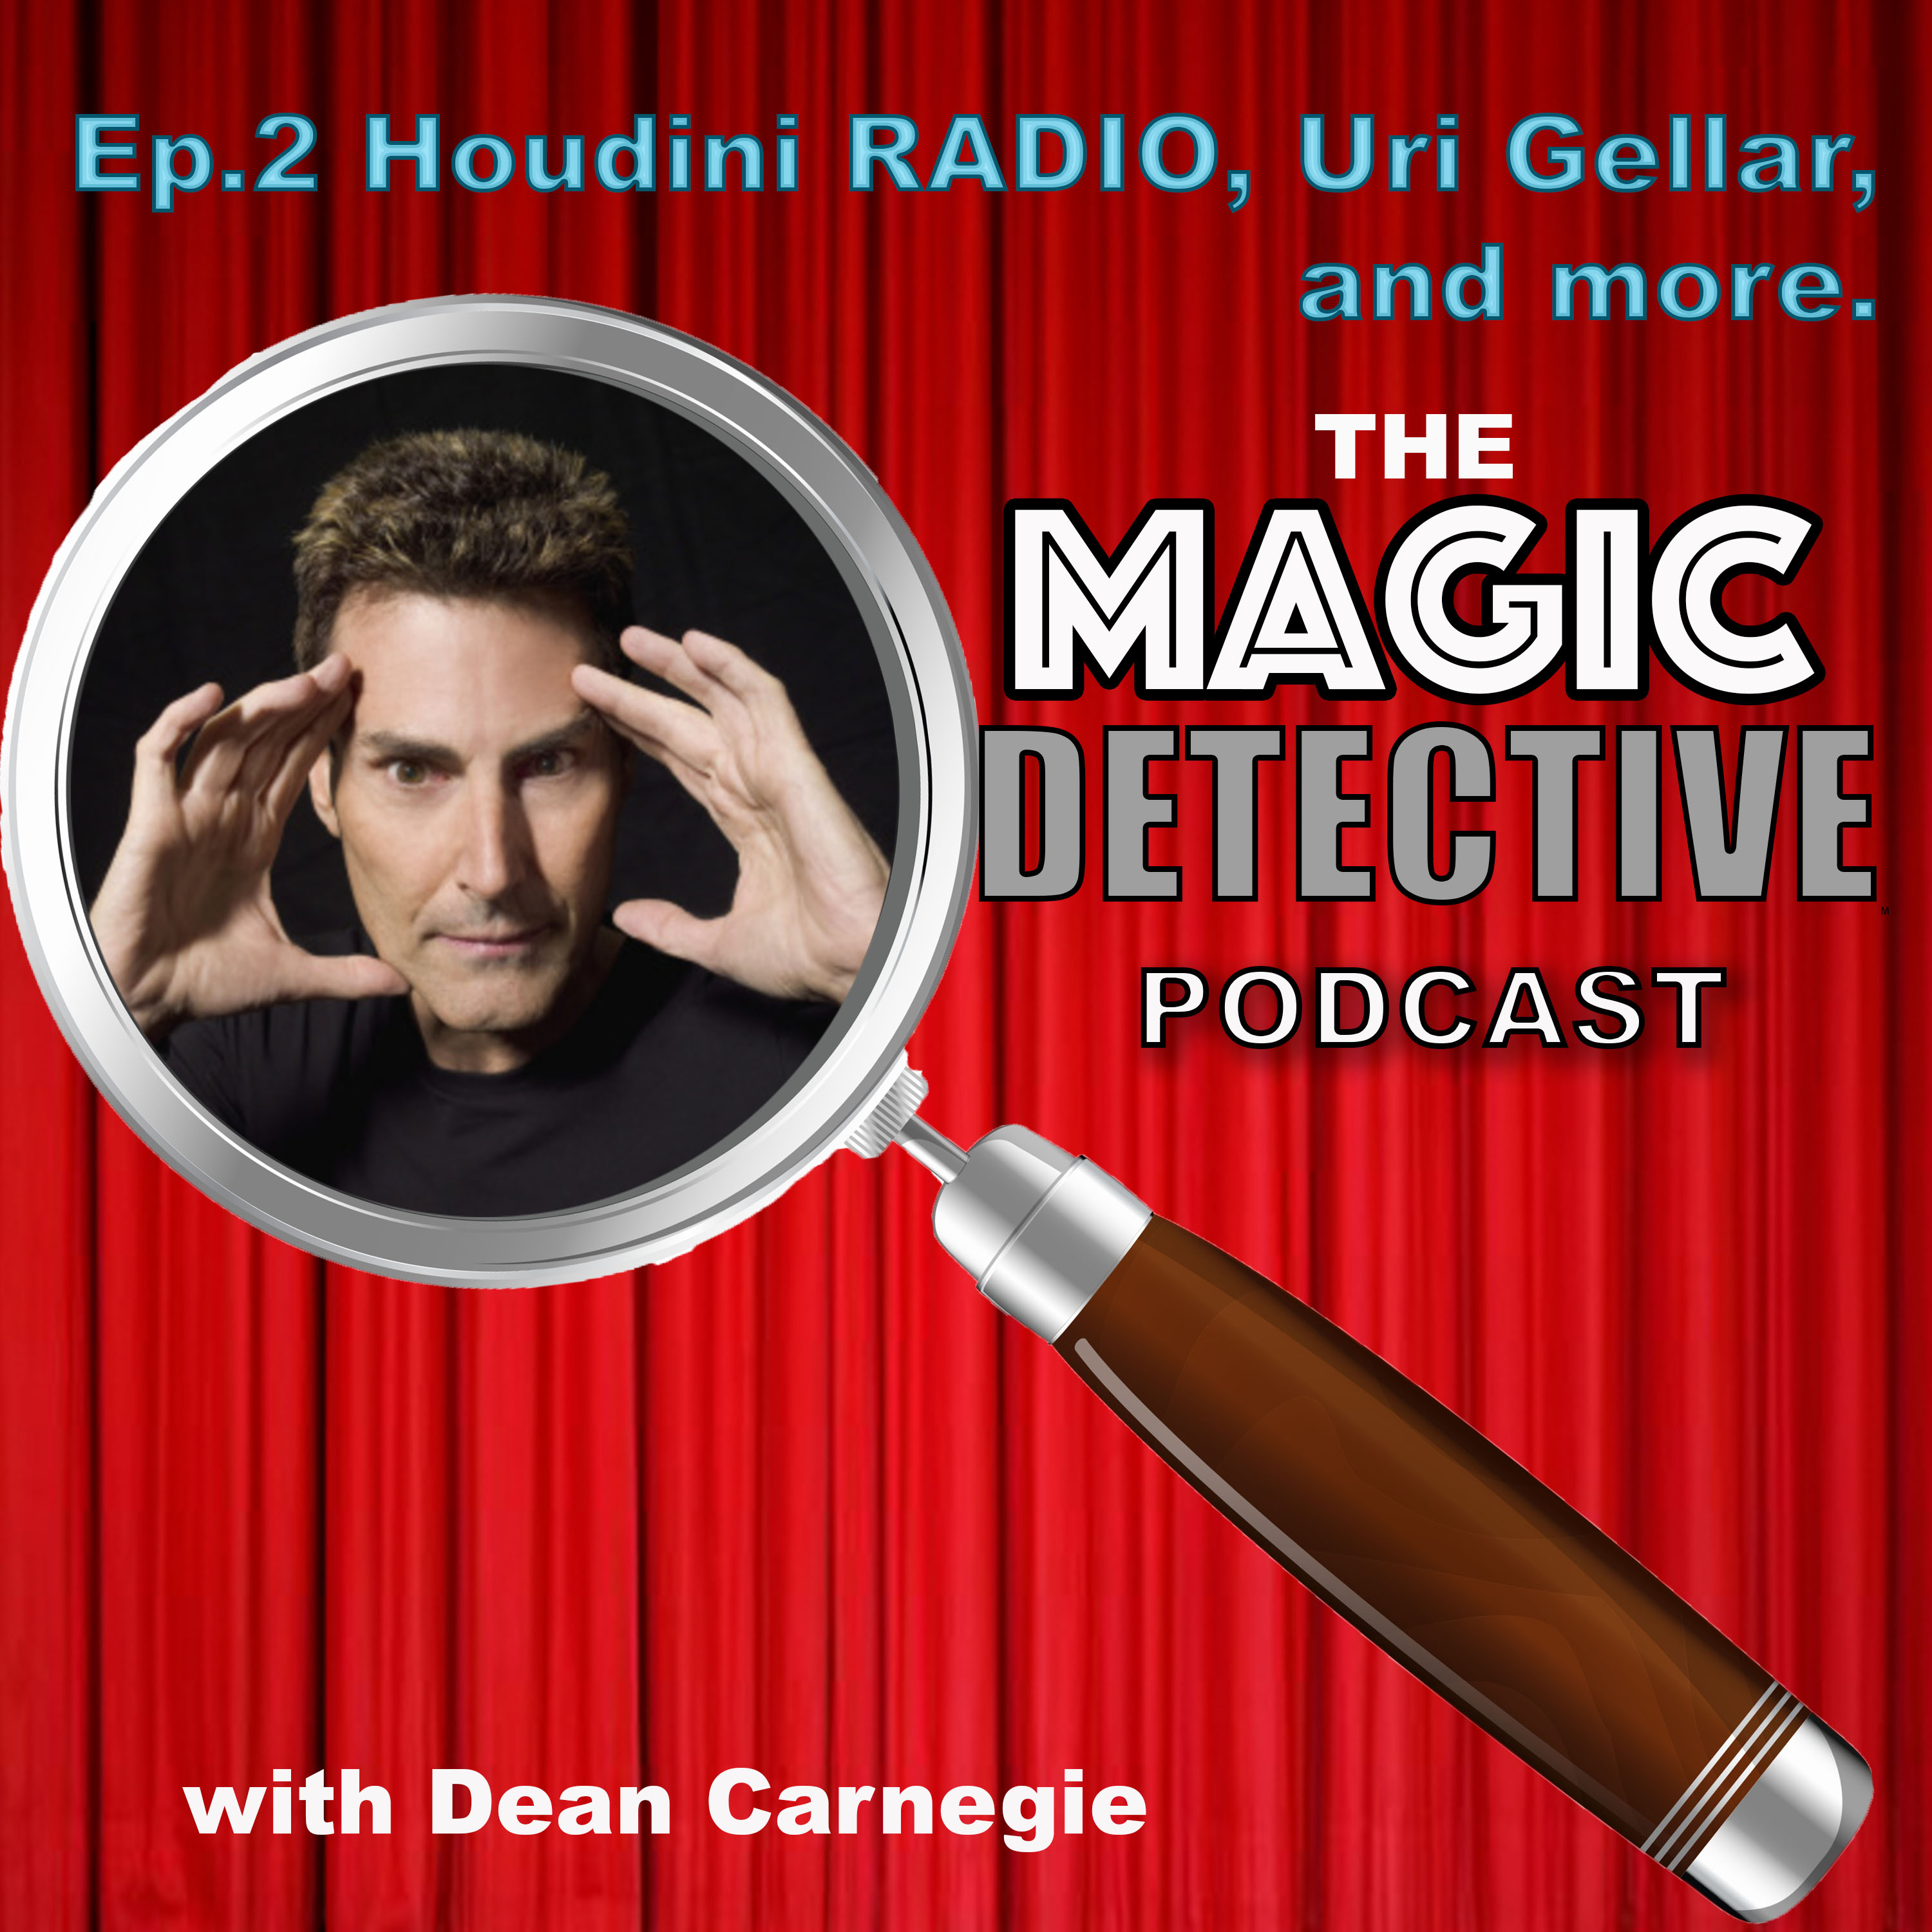 Magic Detective Podcast Episode 2